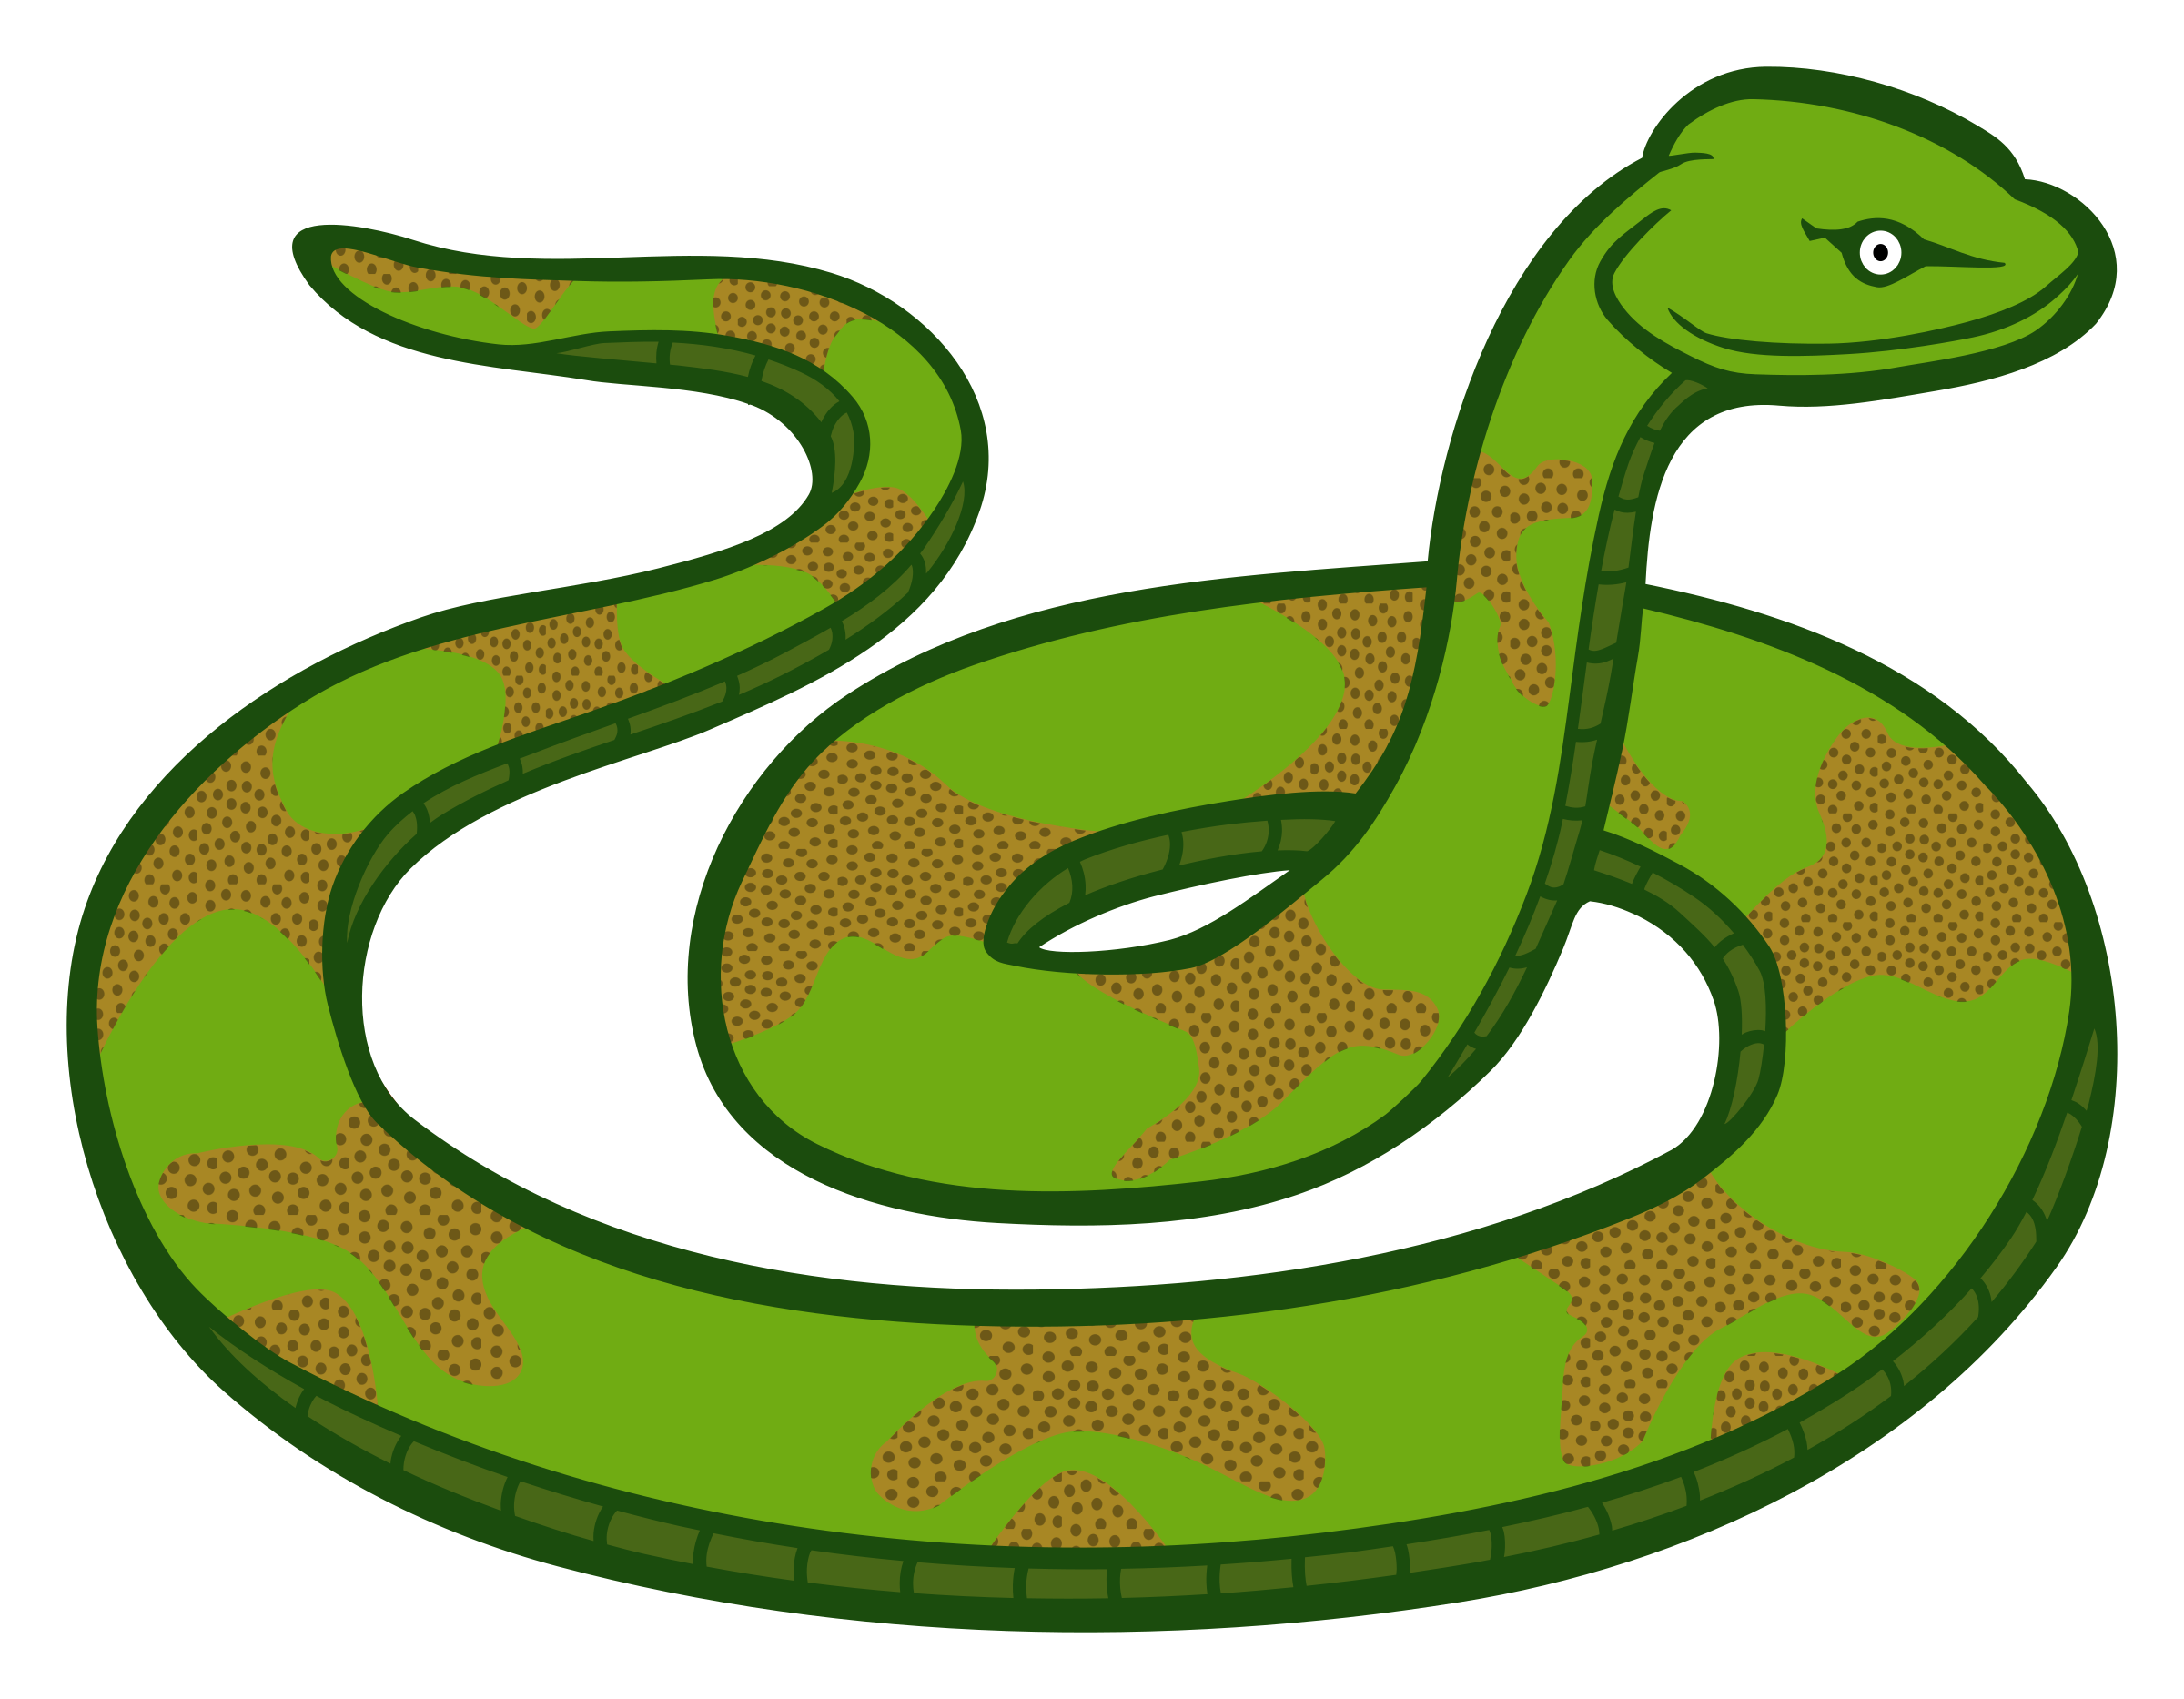 Snake clipart #16, Download drawings